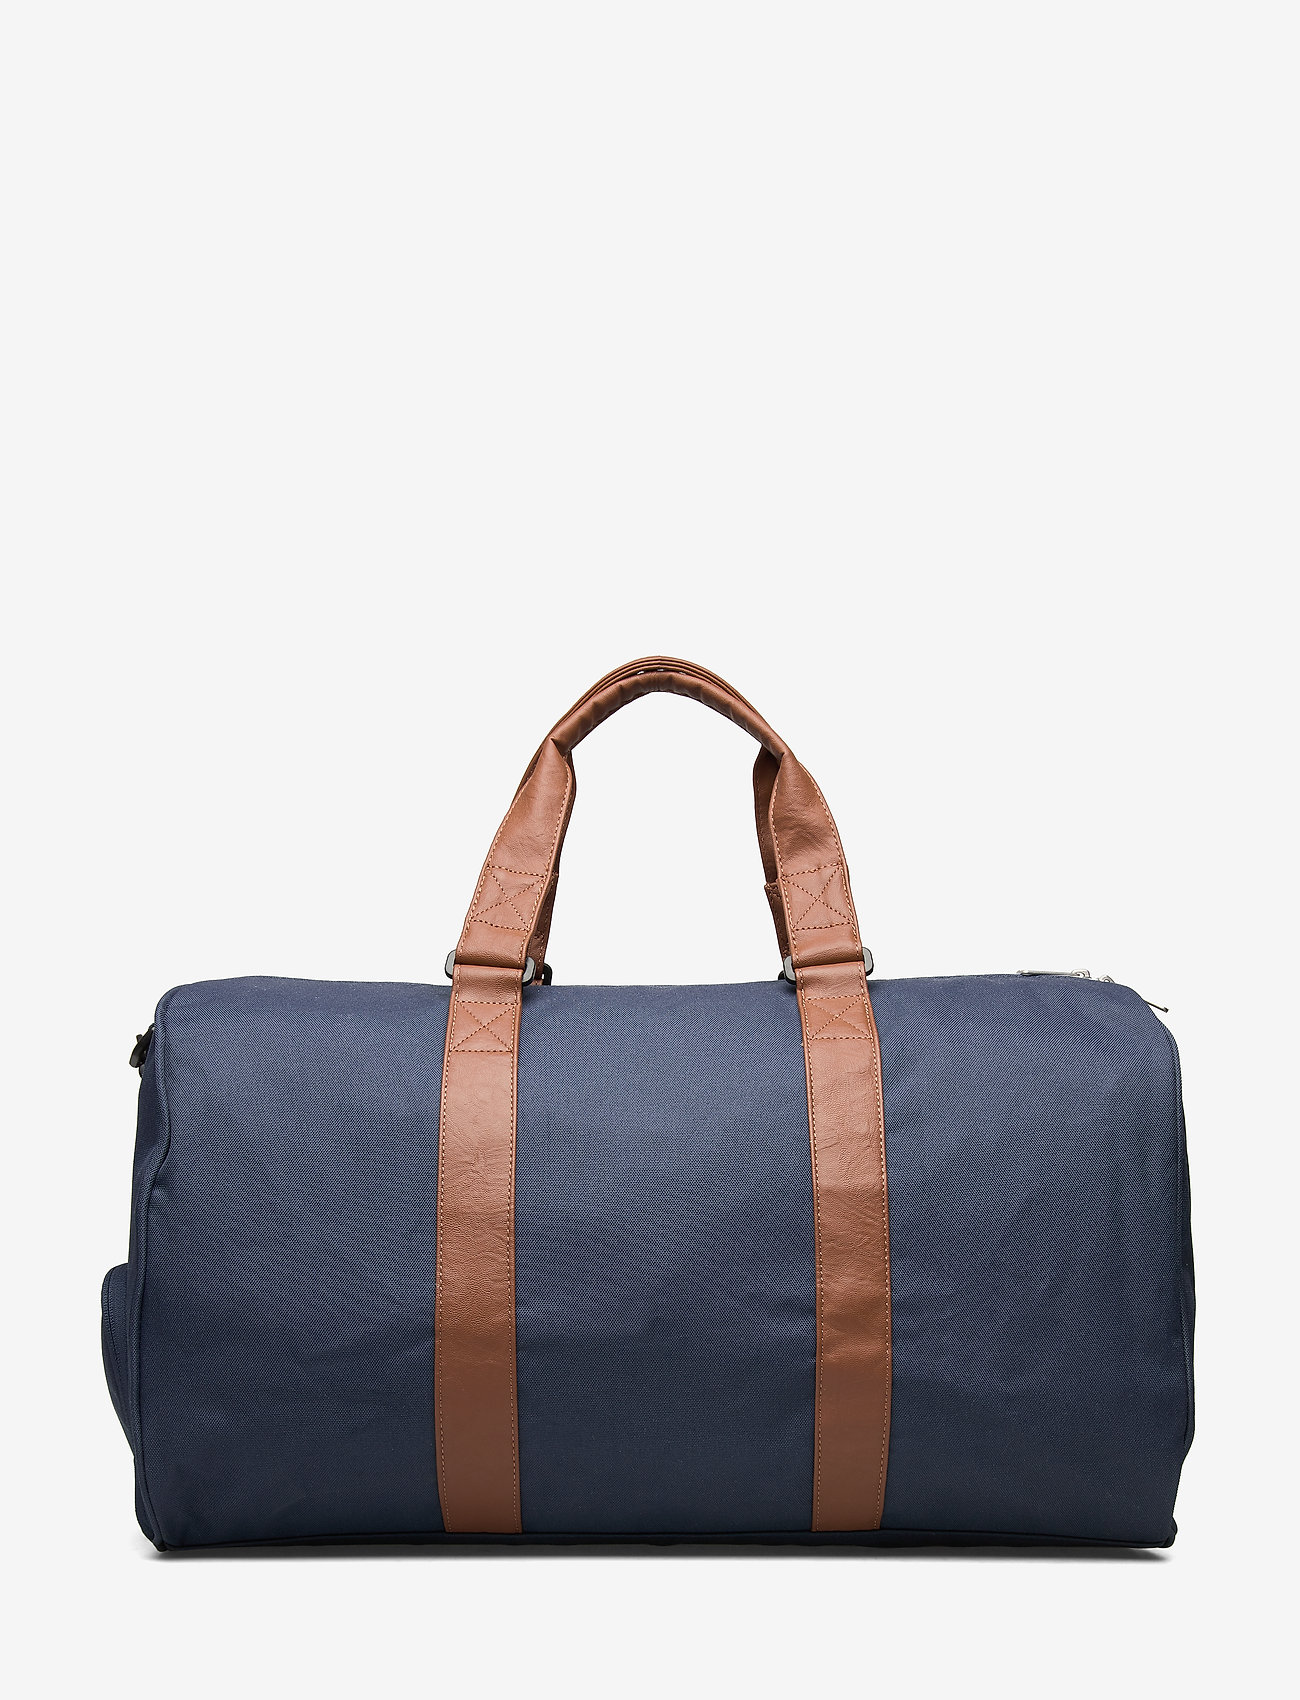 Herschel - Novel - Navy/Tan - weekender & sporttaschen - navy/tan - 1